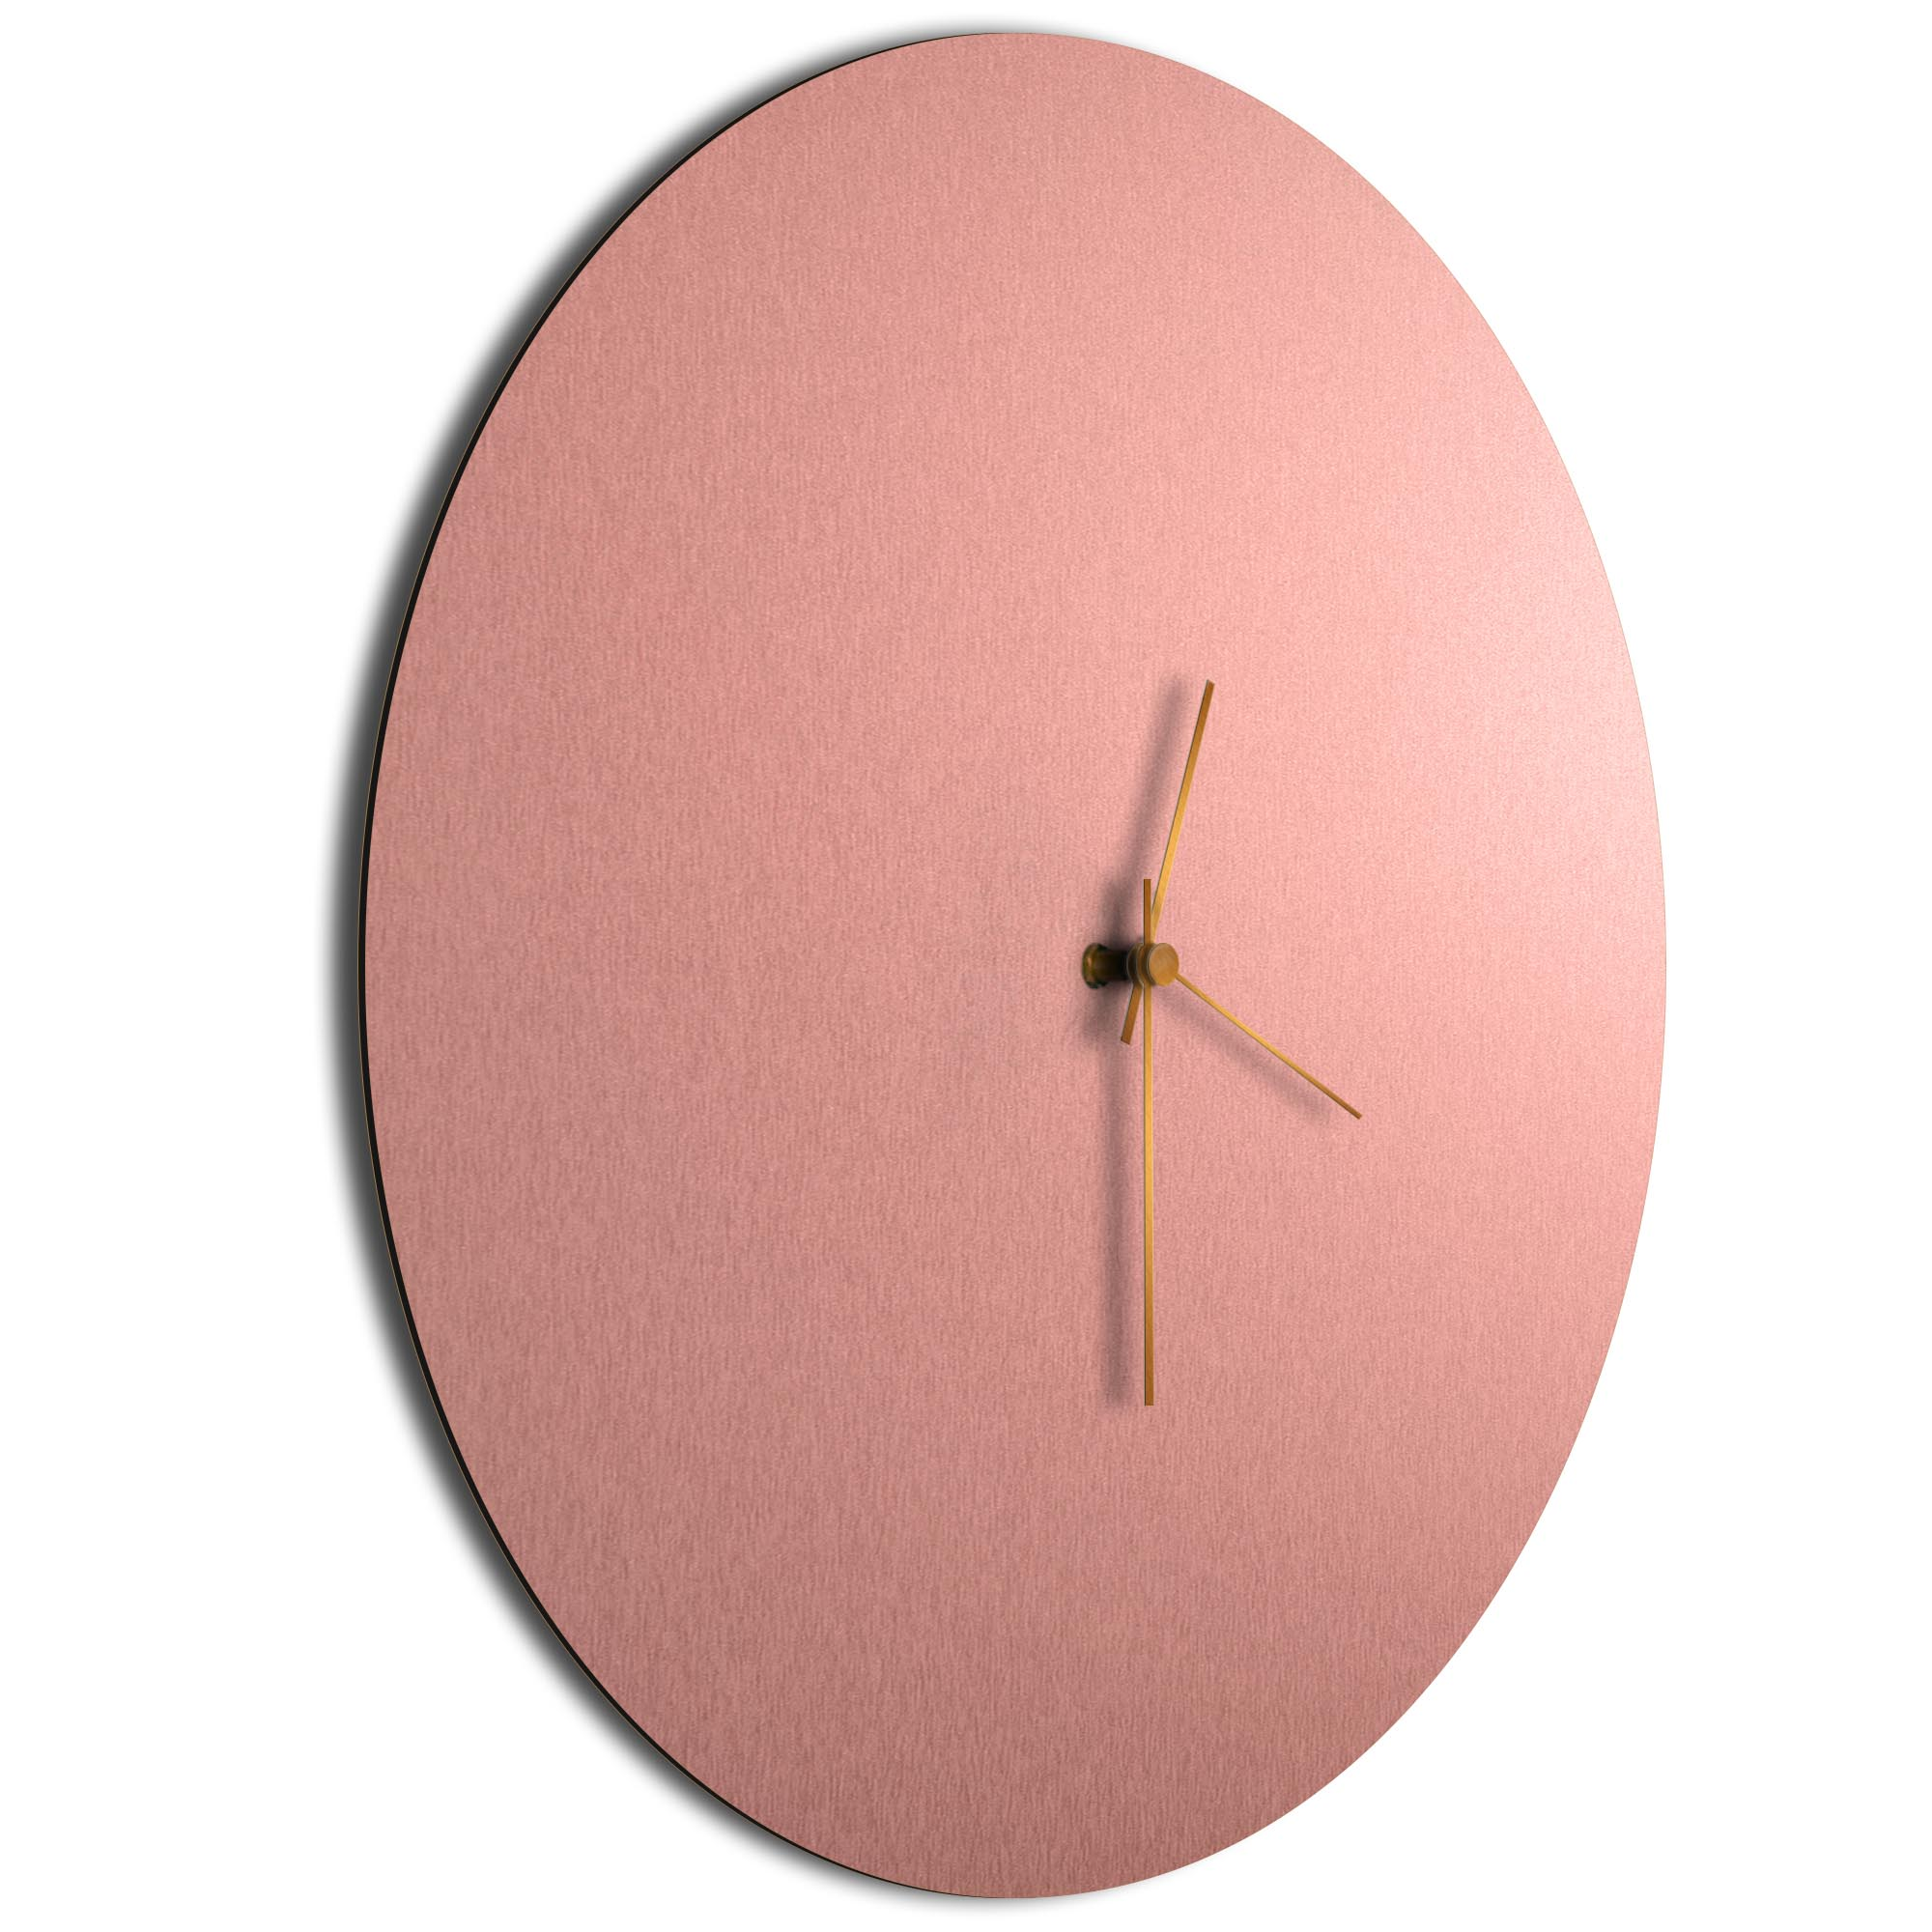 Coppersmith Circle Clock Bronze - Image 2